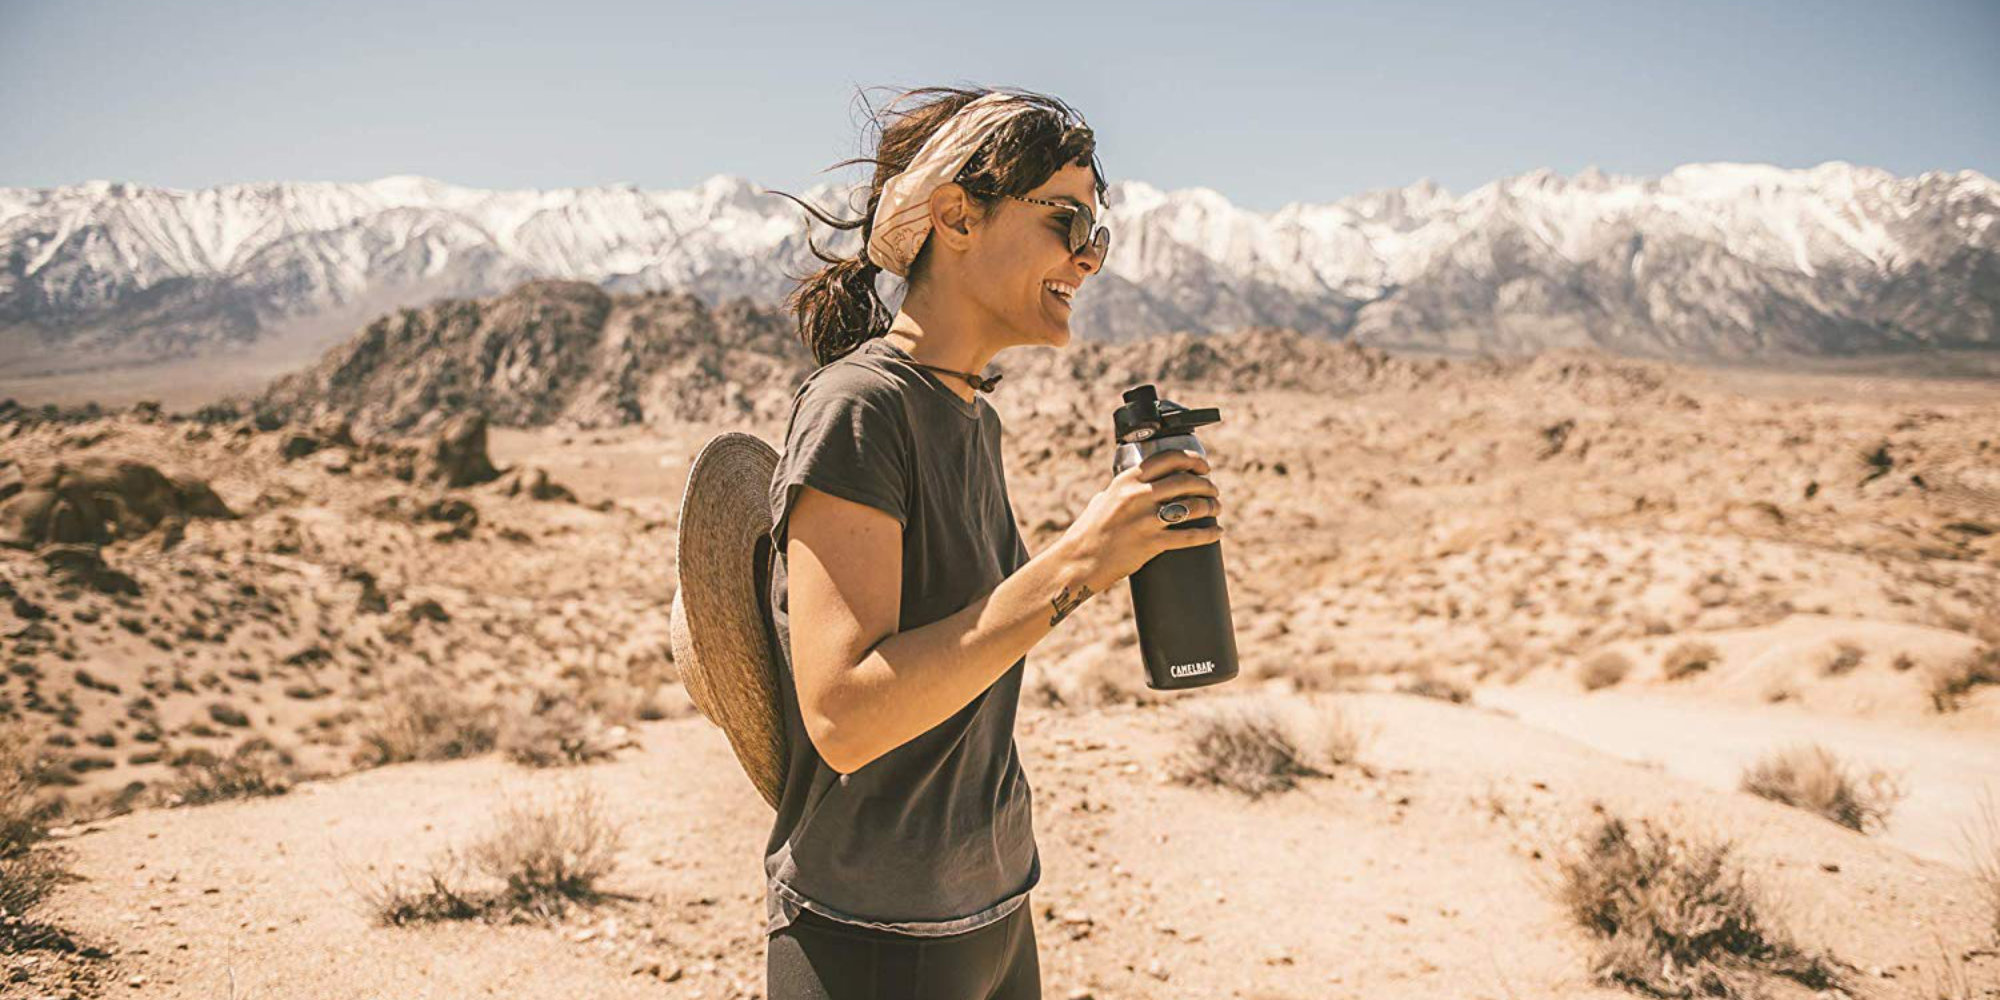 CamelBak's 32-ounce Vacuum Insulated Bottle can maintain temps for up to 24 hours: $27 (Save 25%)